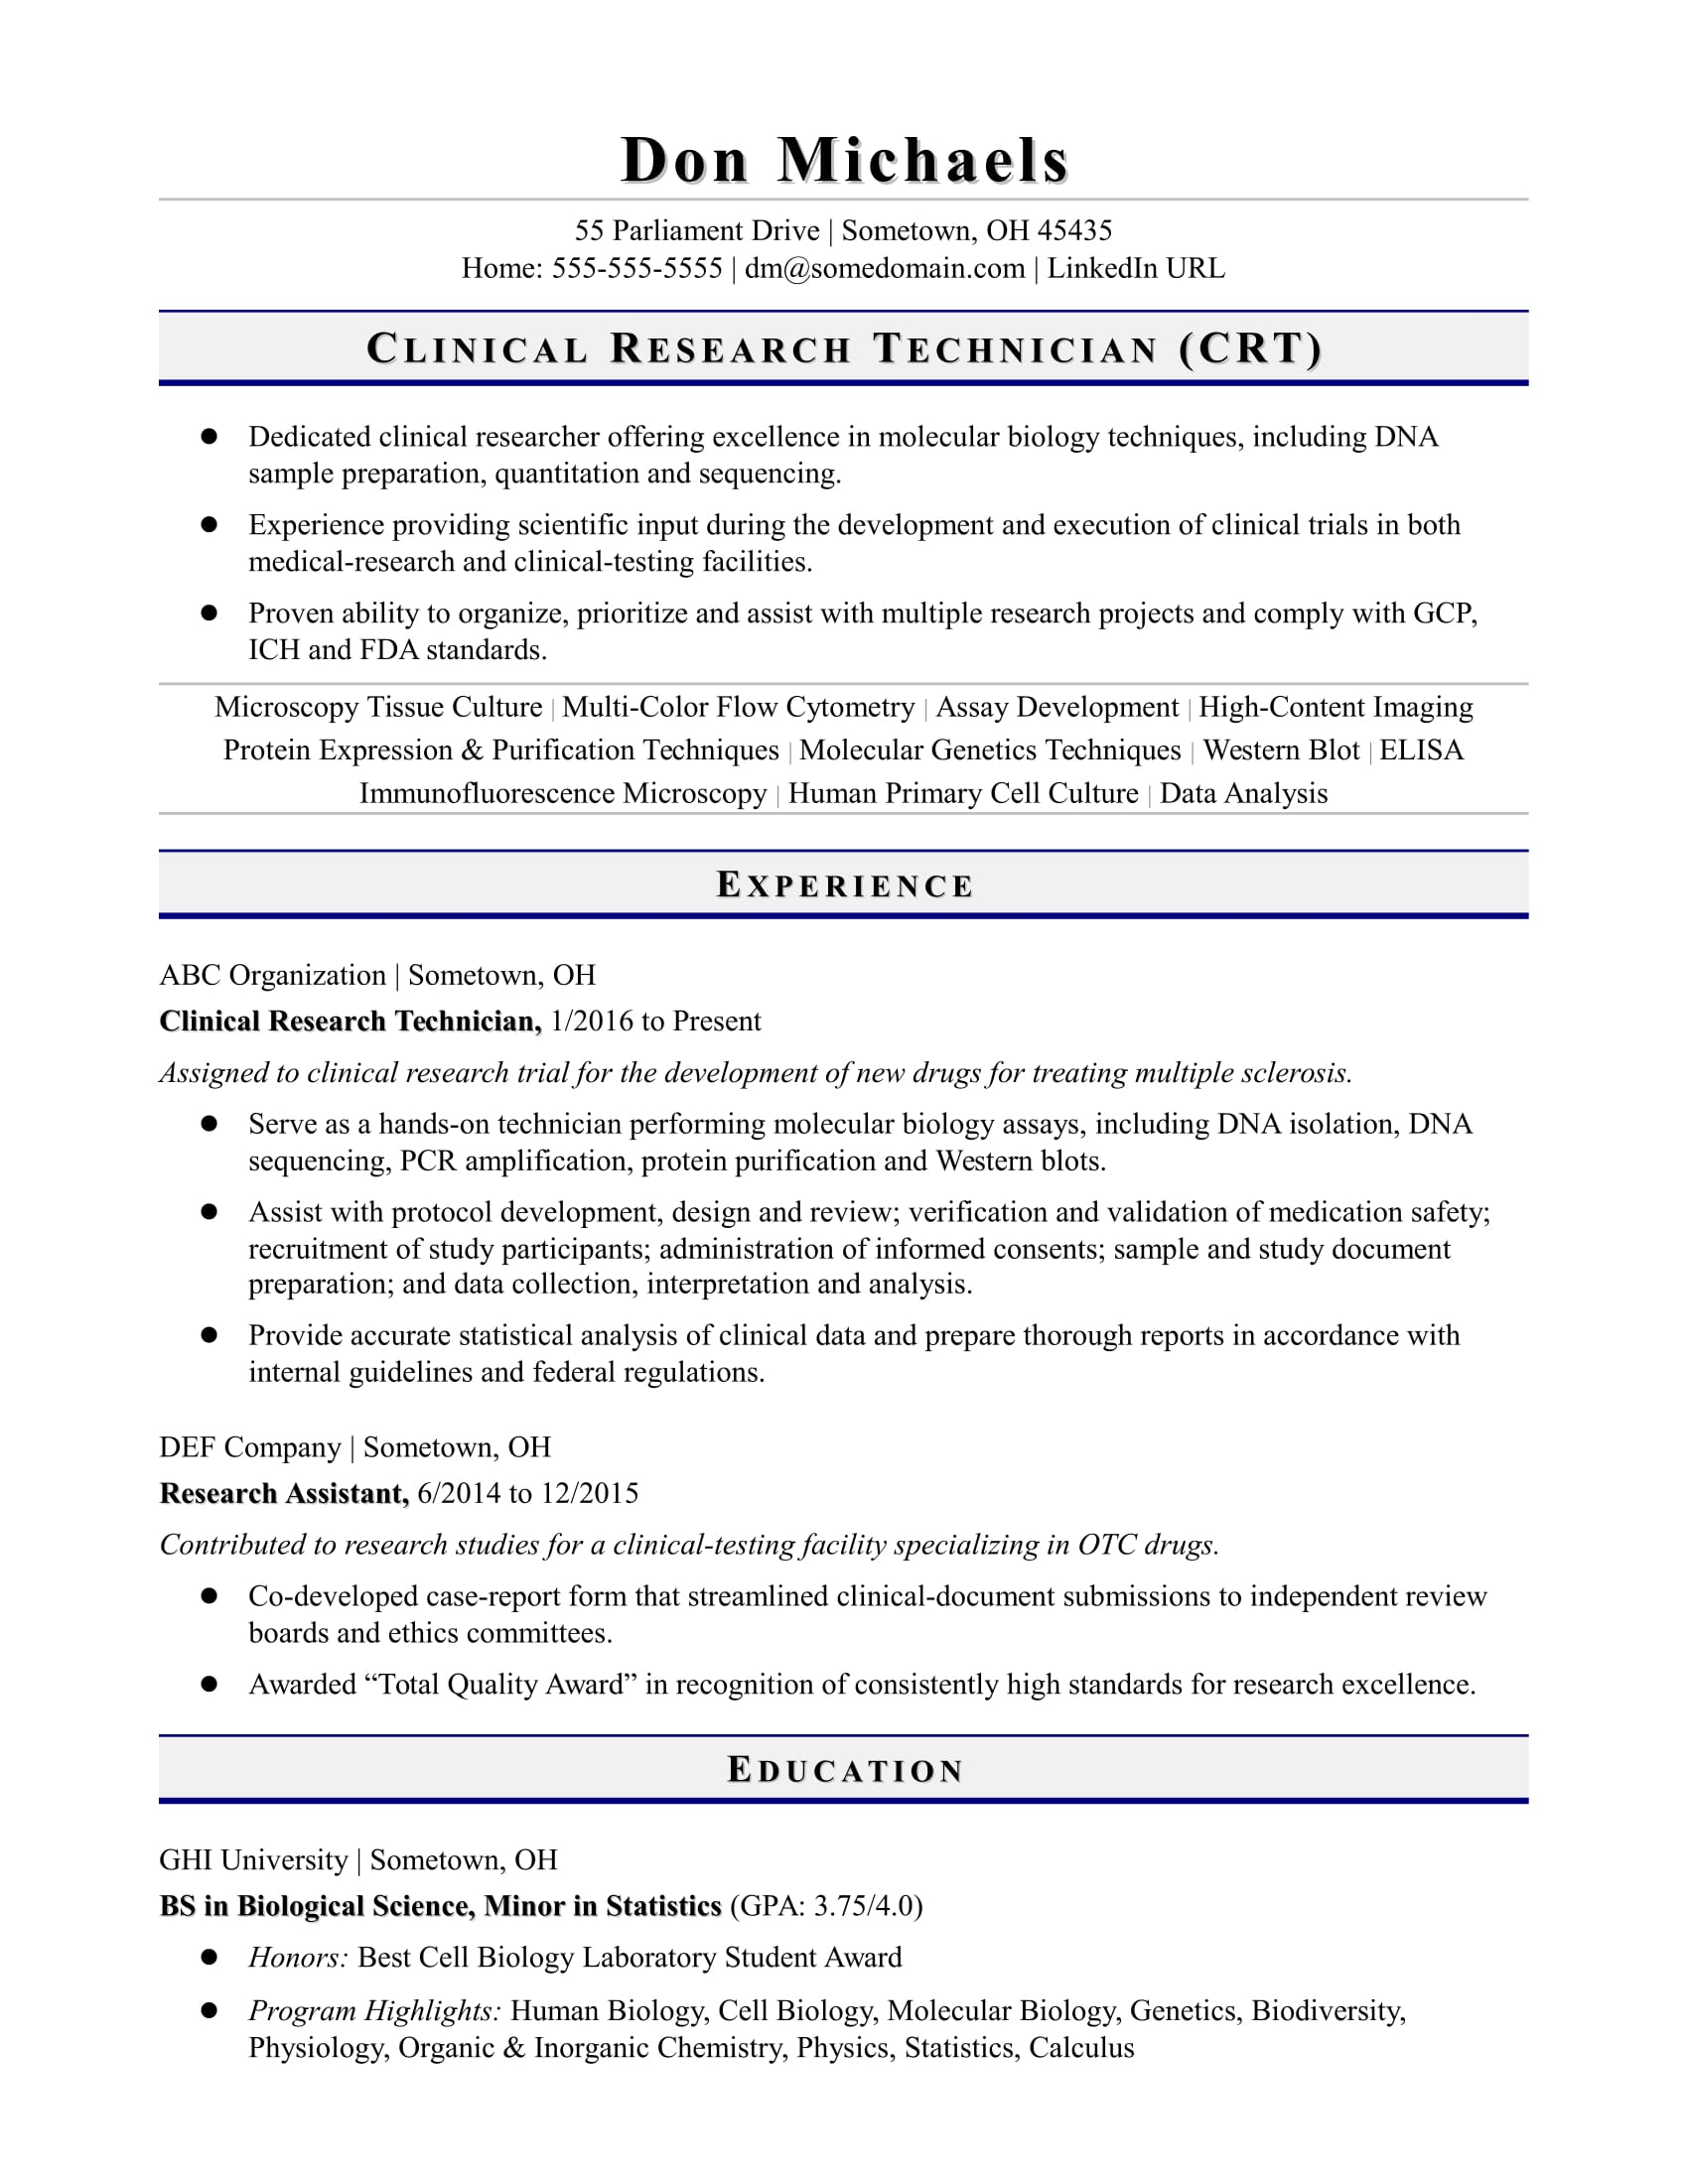 Research Associate Resume Sample Entry Level Research Technician Resume Sample Monster